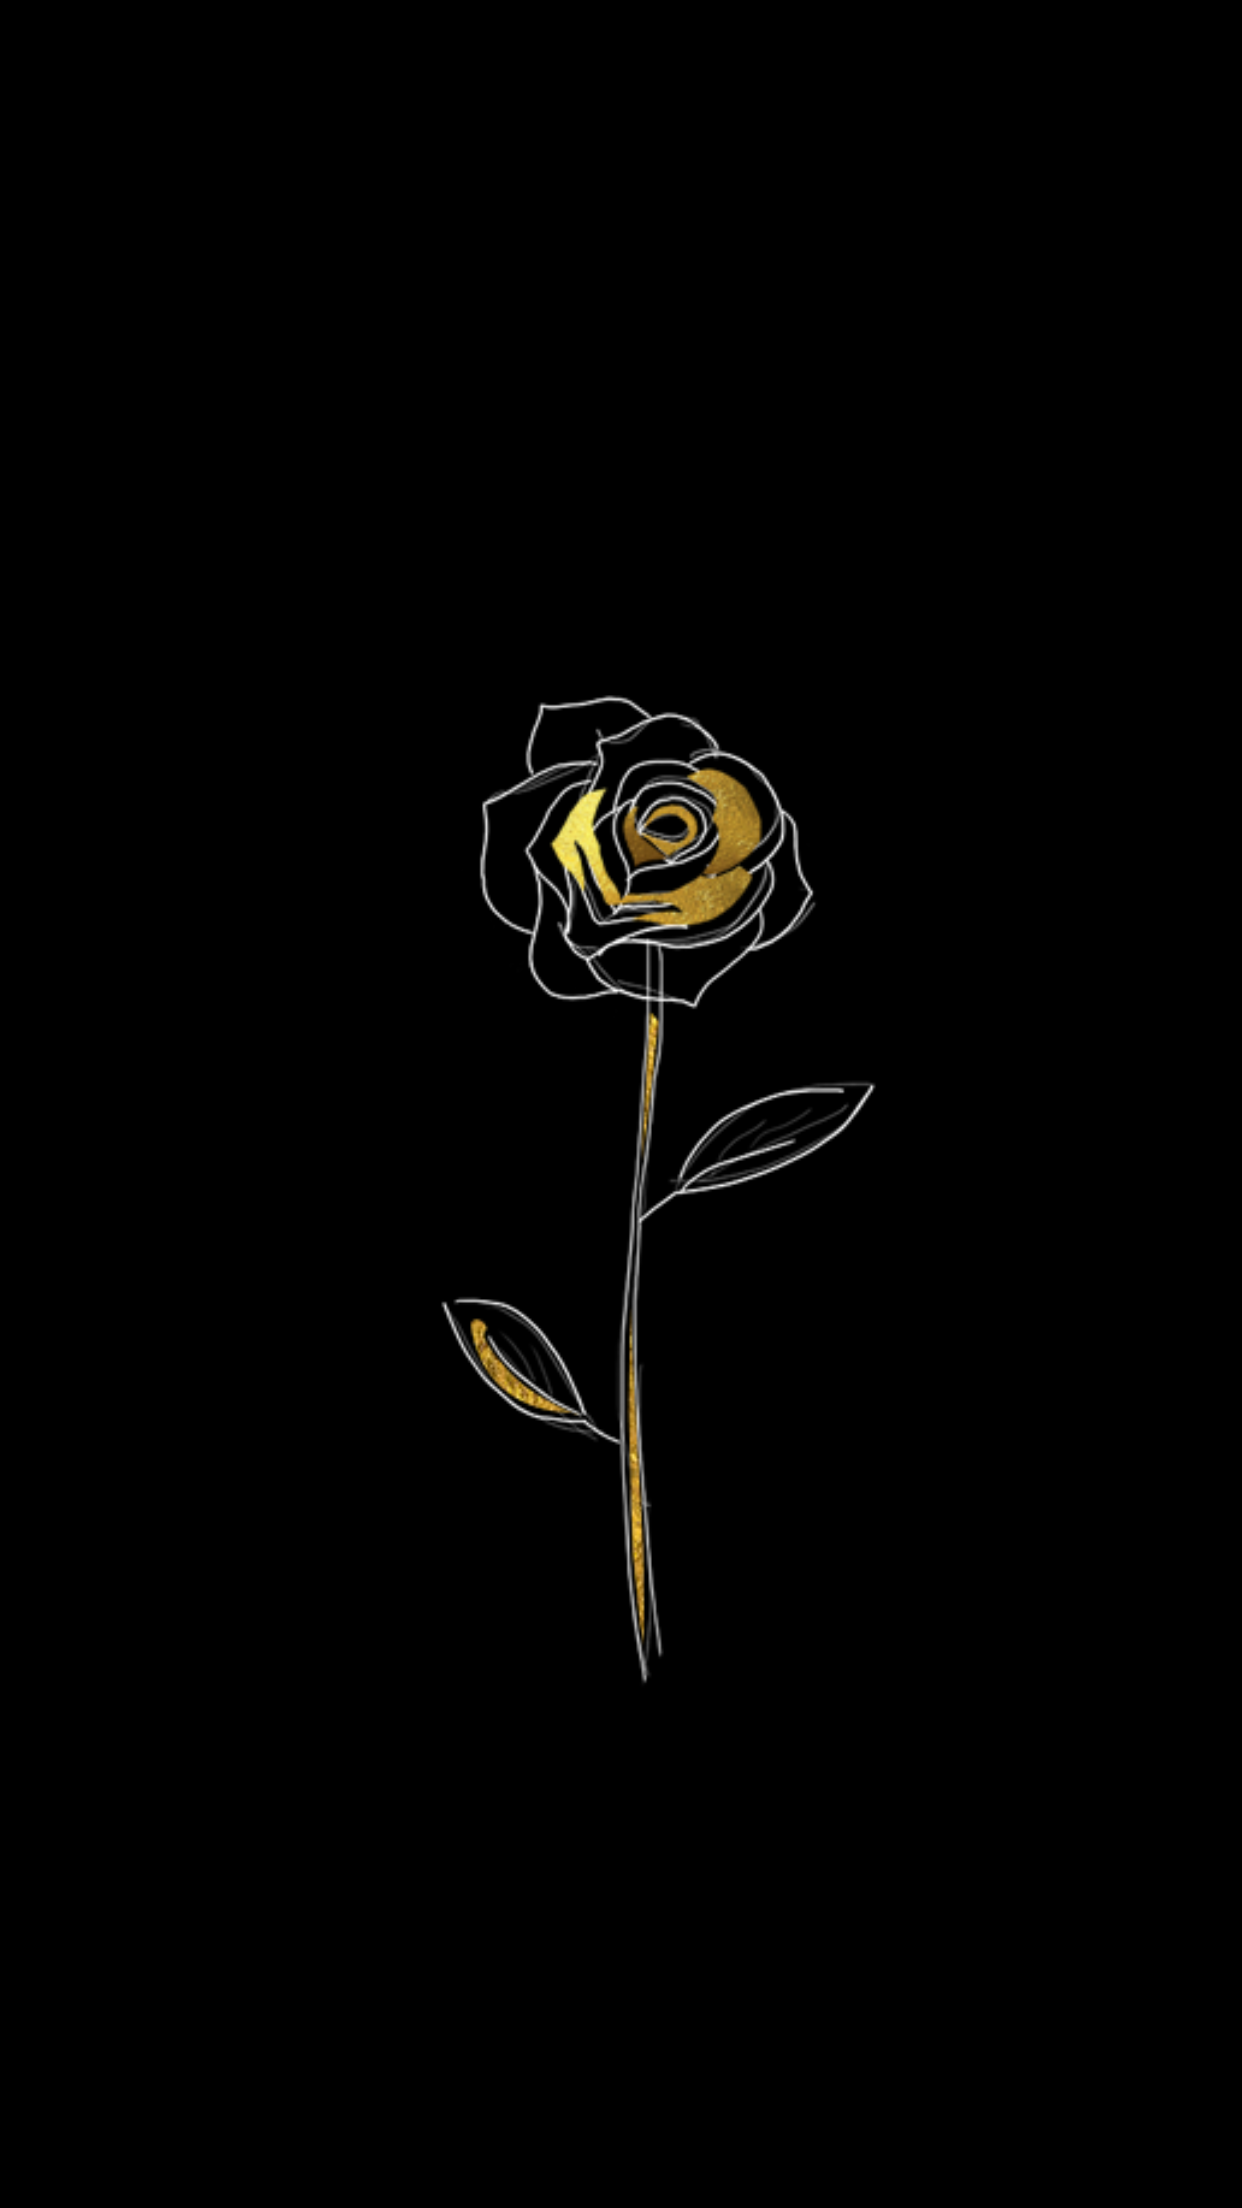 Pin By Brittani On Roses Black Wallpaper Gold Aesthetic Phone Screen Wallpaper